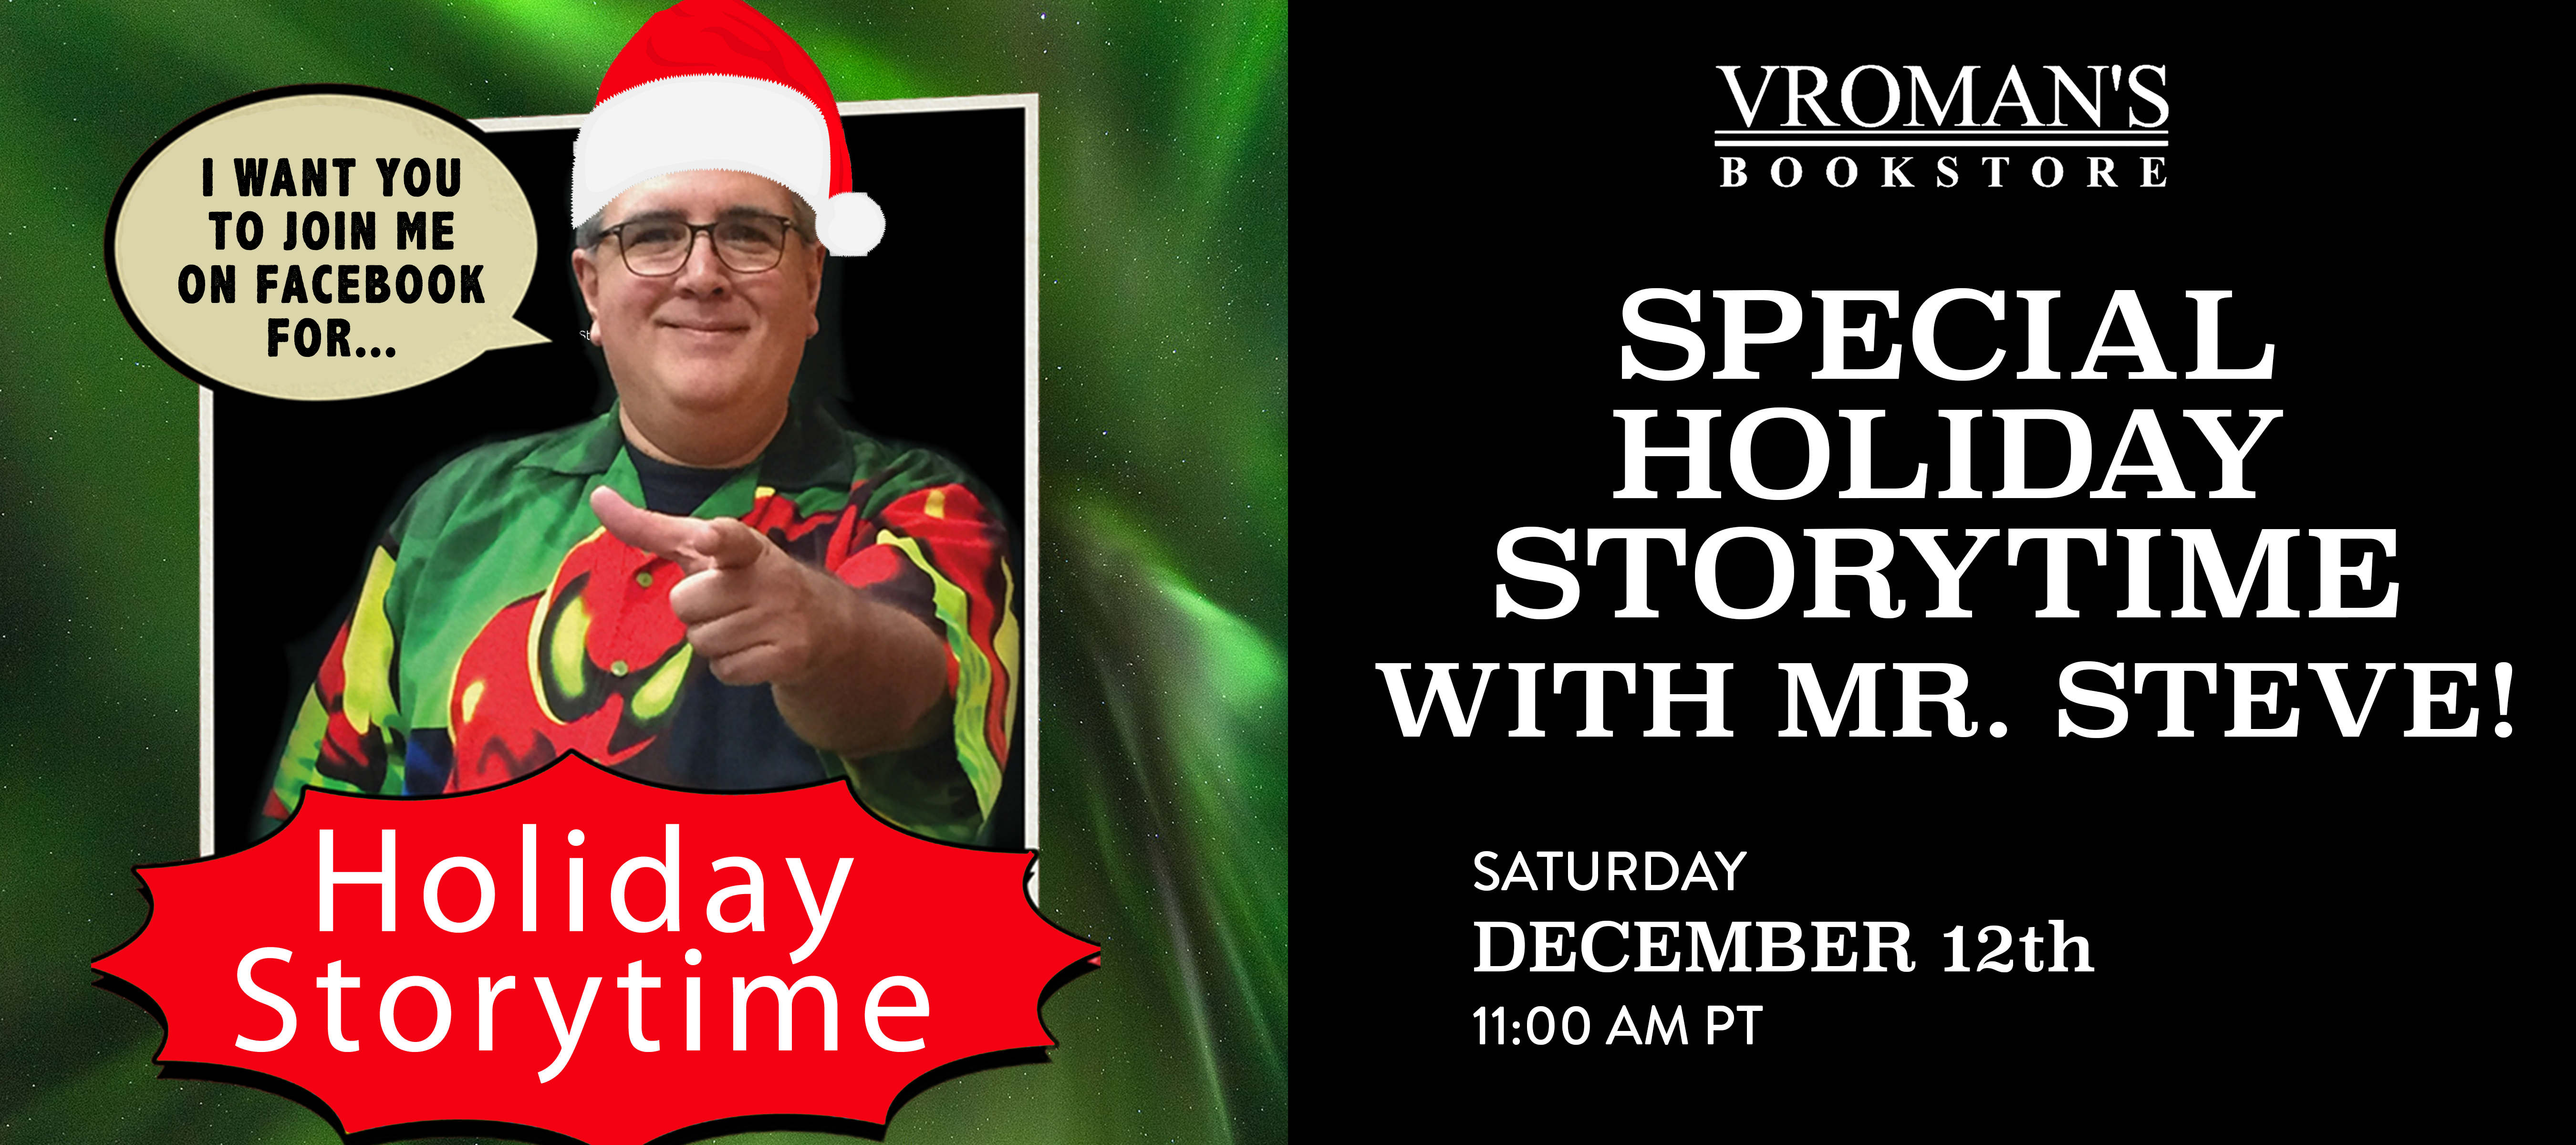 Holiday storytime event banner